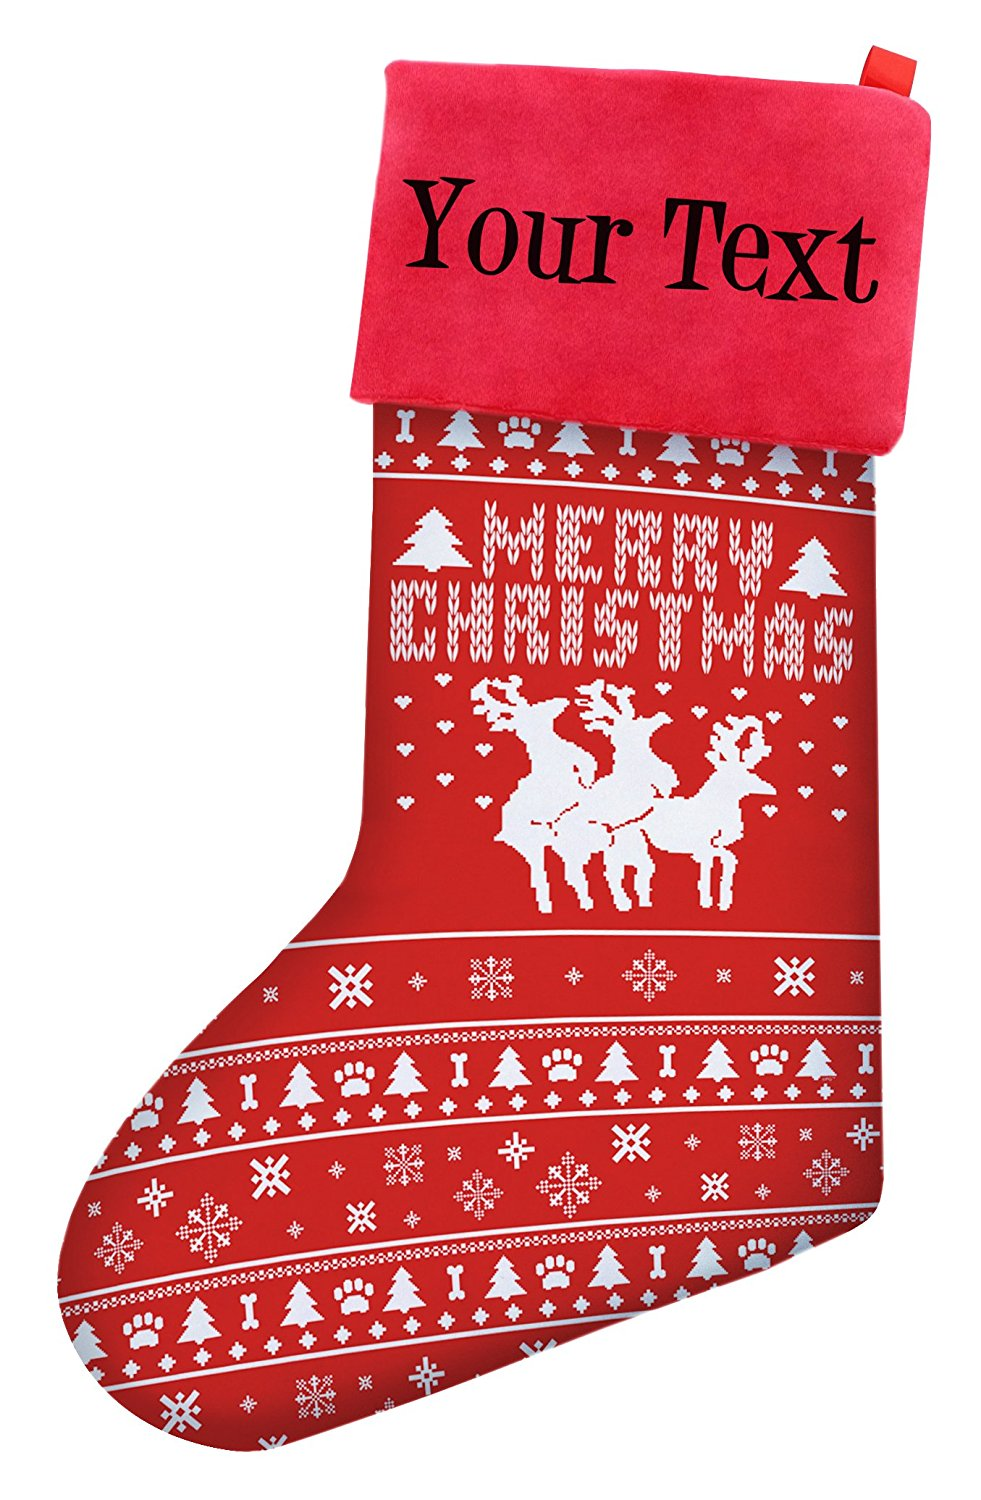 Cheap Personalized Christmas Stockings Sale Find Personalized